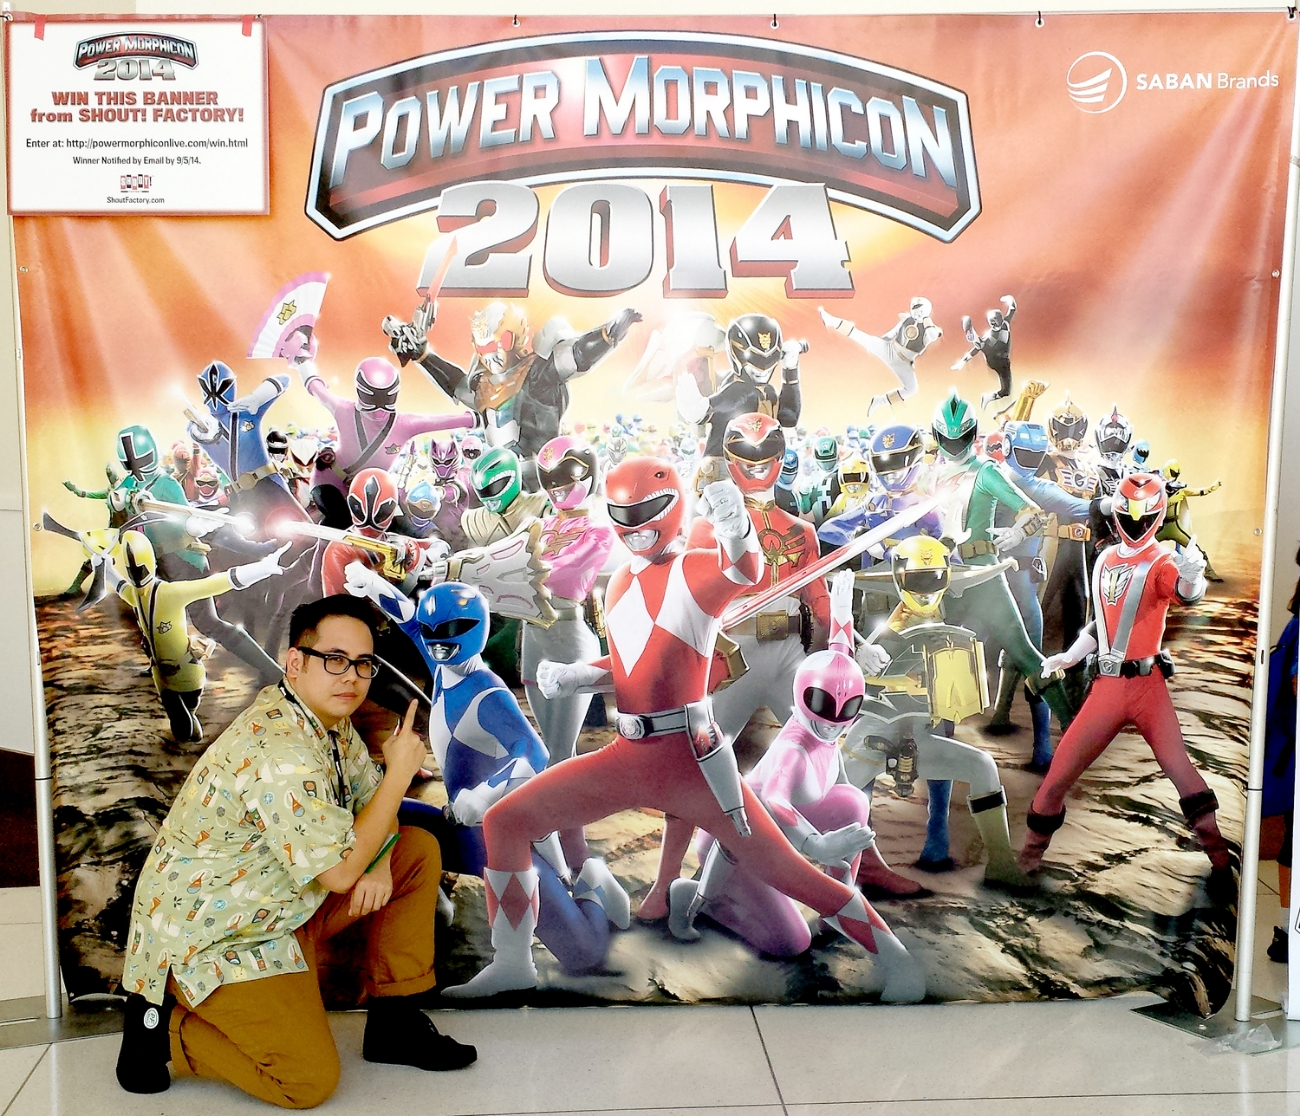 Had to take a photo op with the official Power Morphicon 2014 Banner.